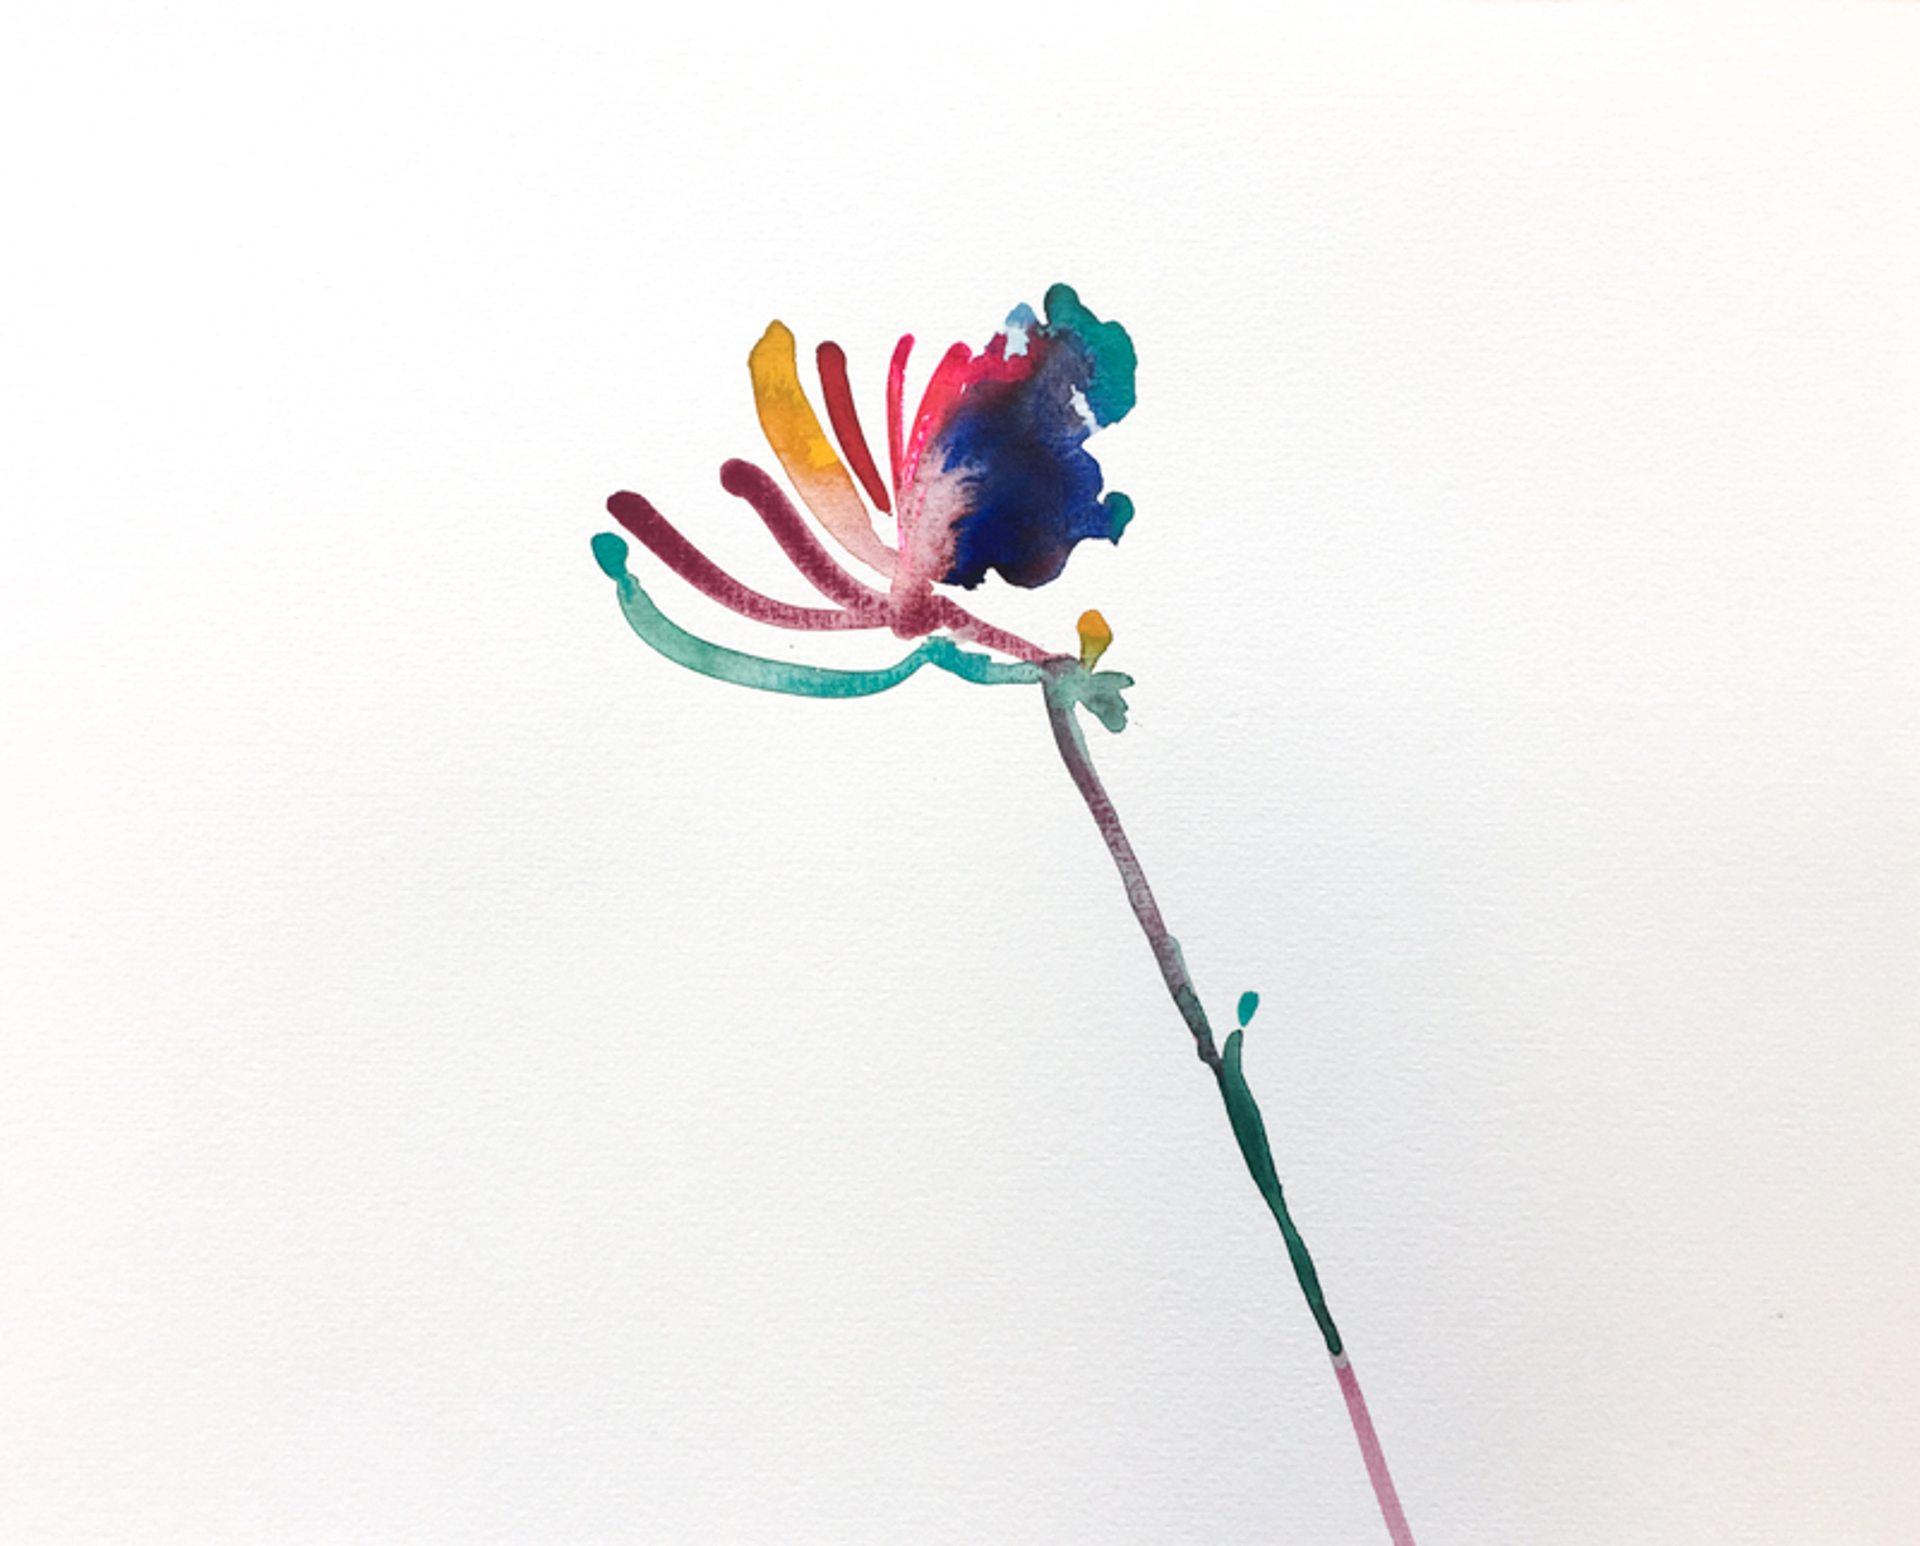 Floral Watercolor No. 3 by Christian Rothmann